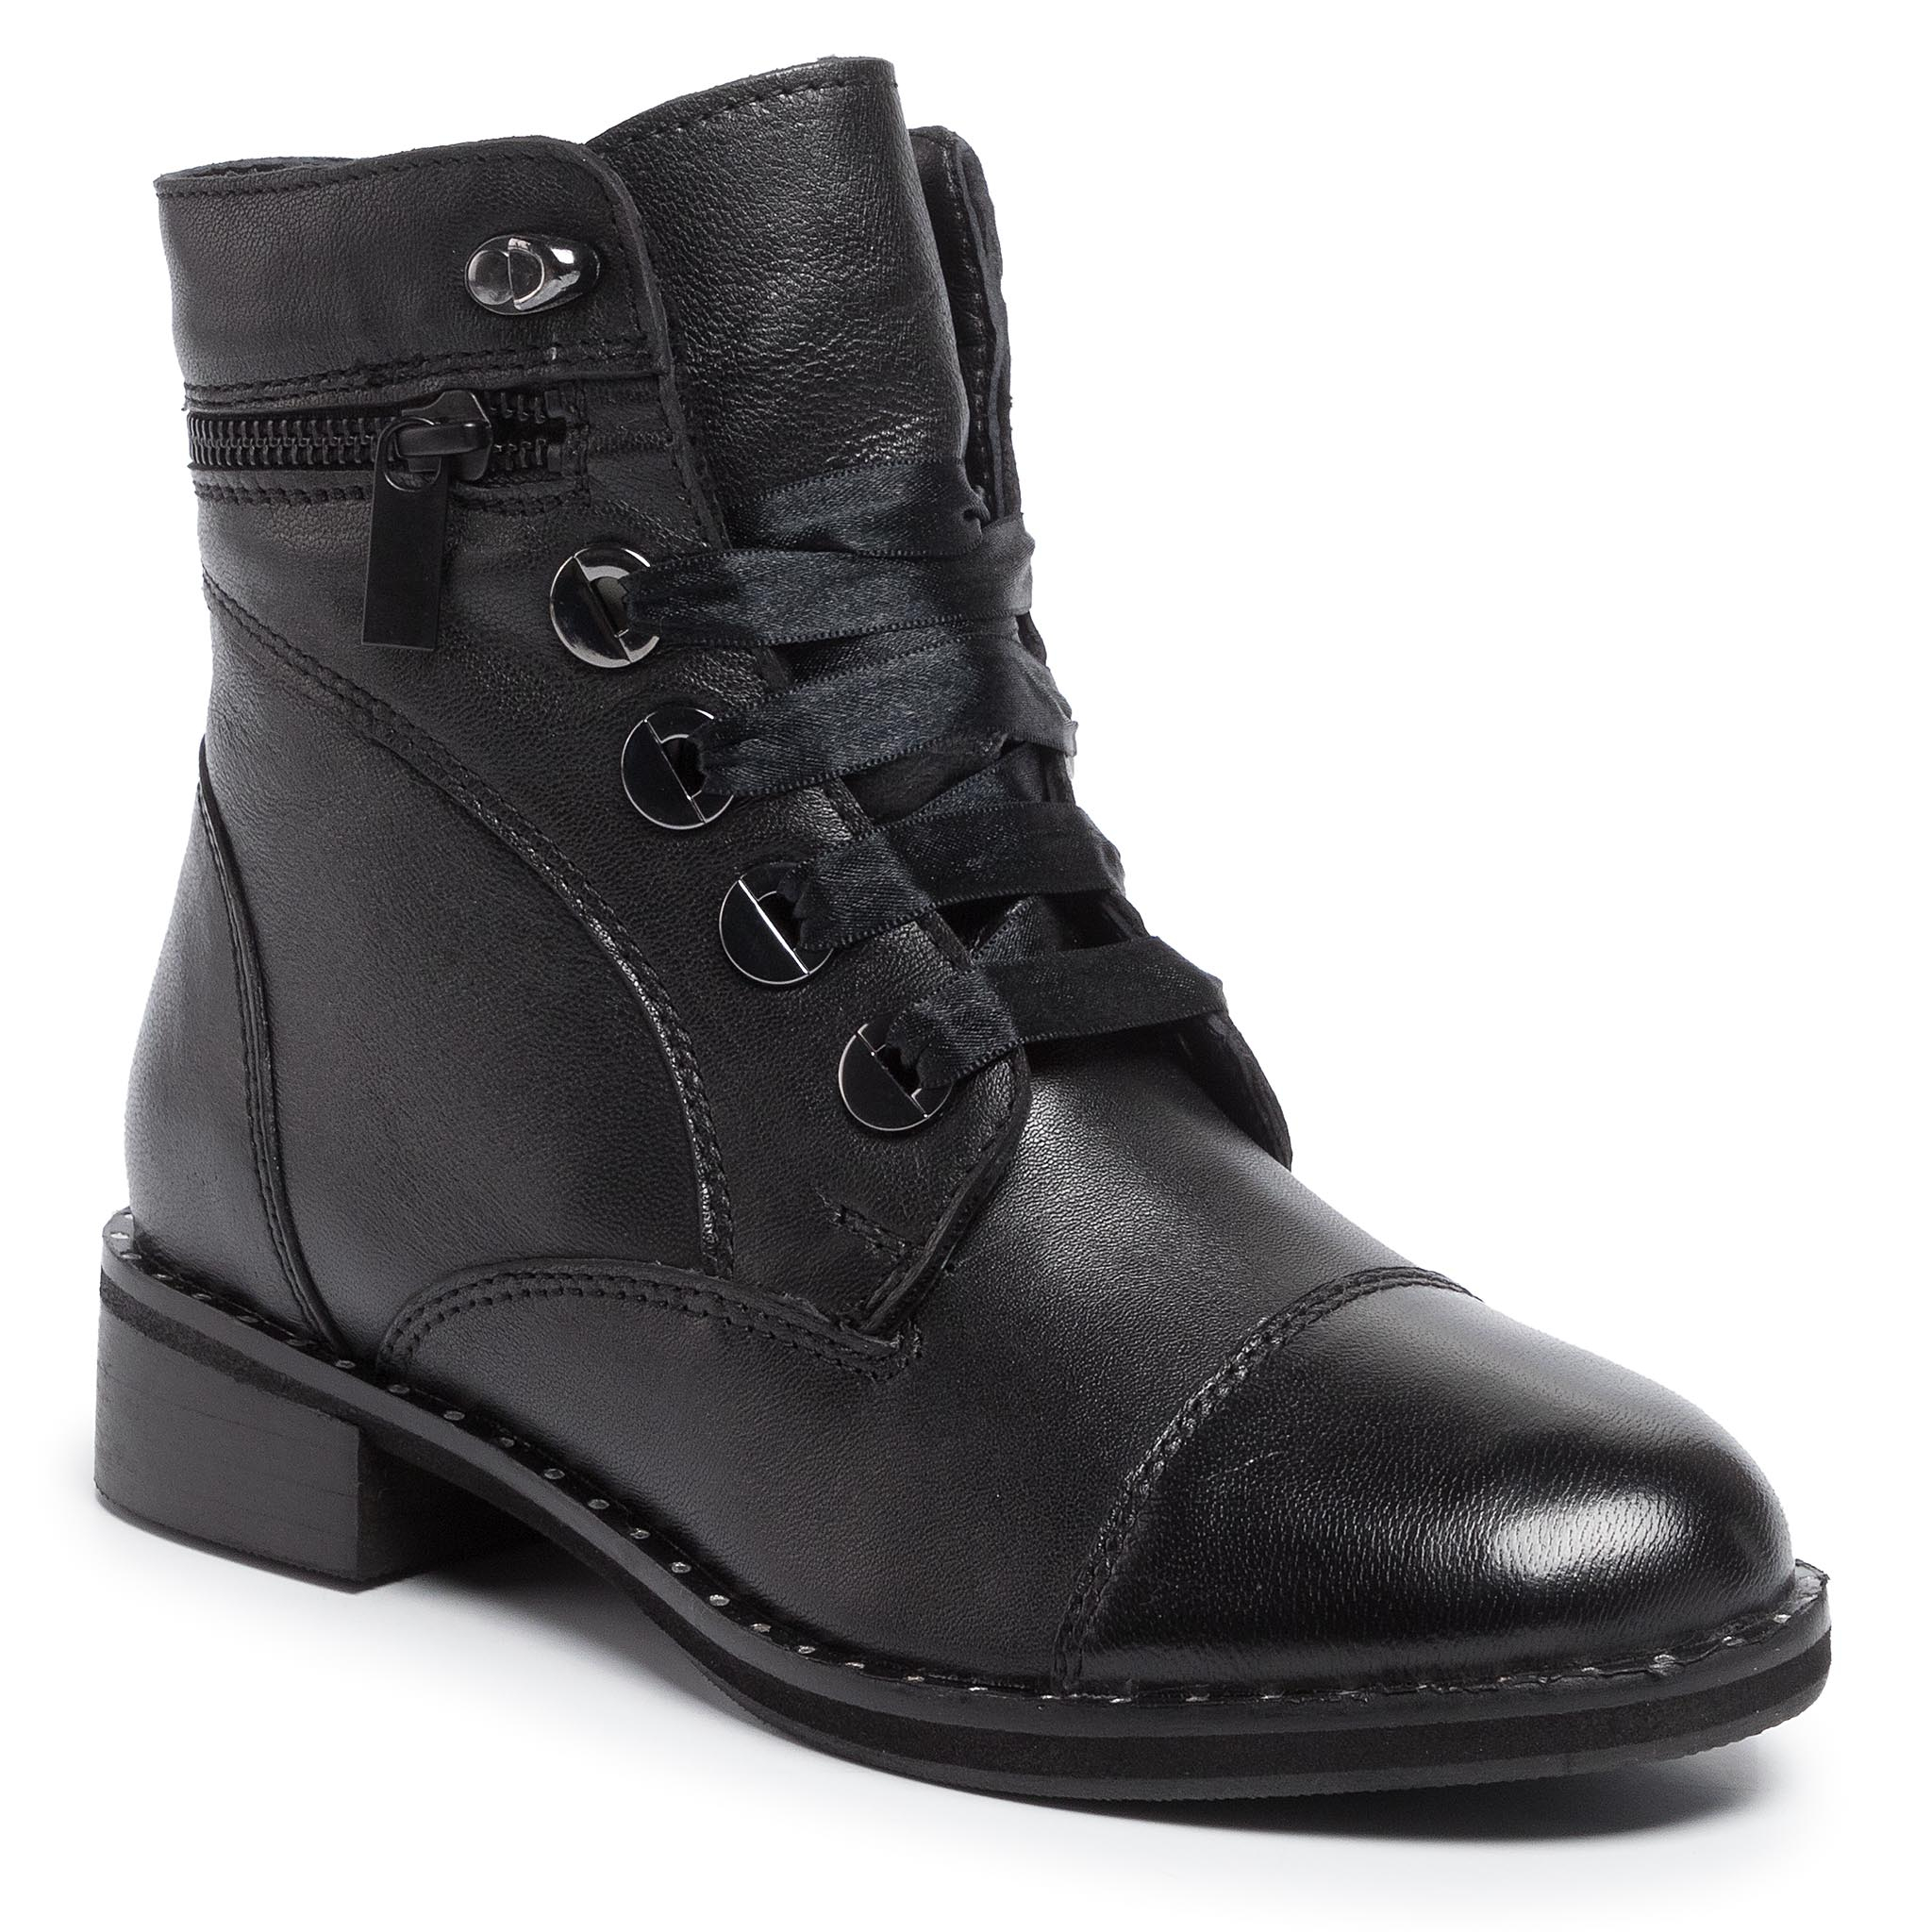 Bottines PIAZZA - 991412 Schwarz 1